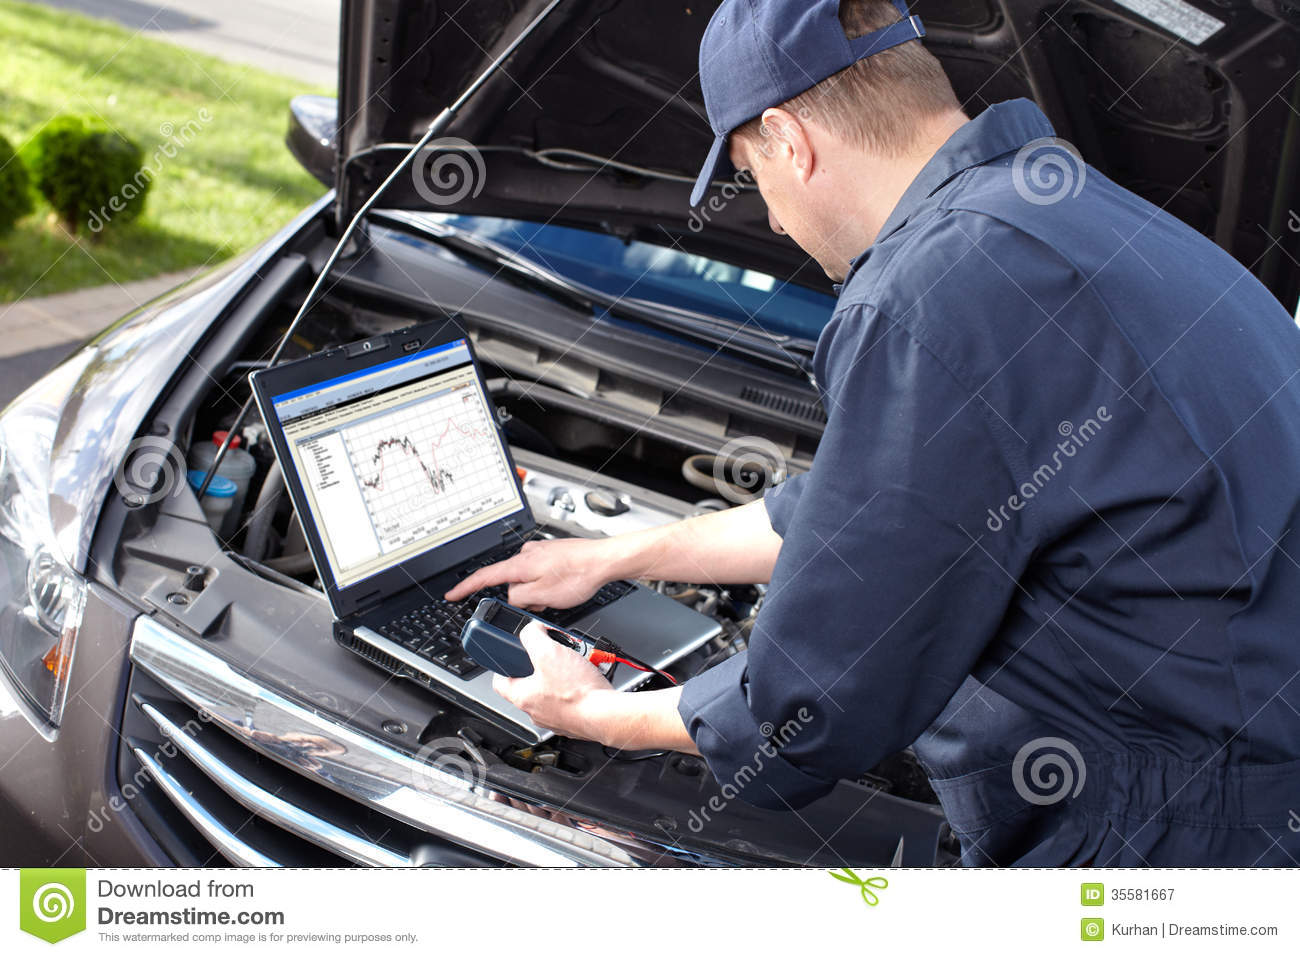 Call For Home Car Services And Minor Repairs Job - Car ...